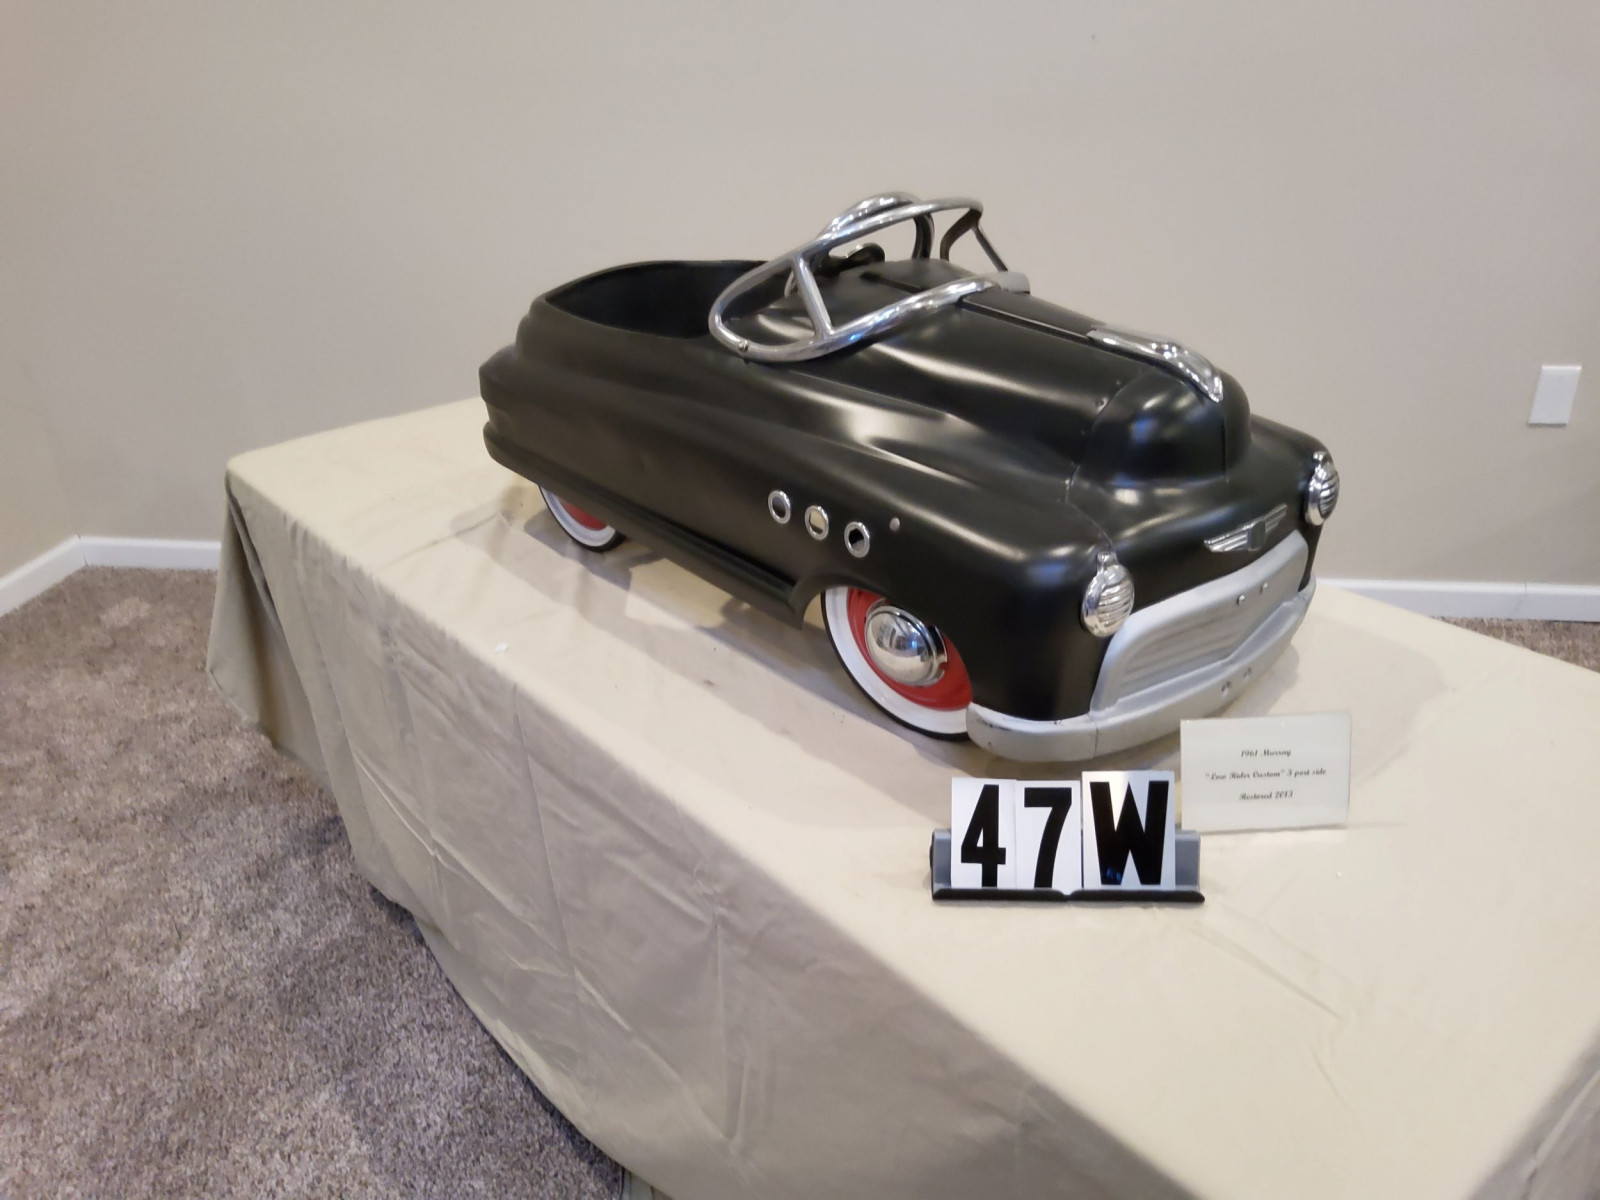 1961 Murray Low Rider Custom Pedal Car - Image 2